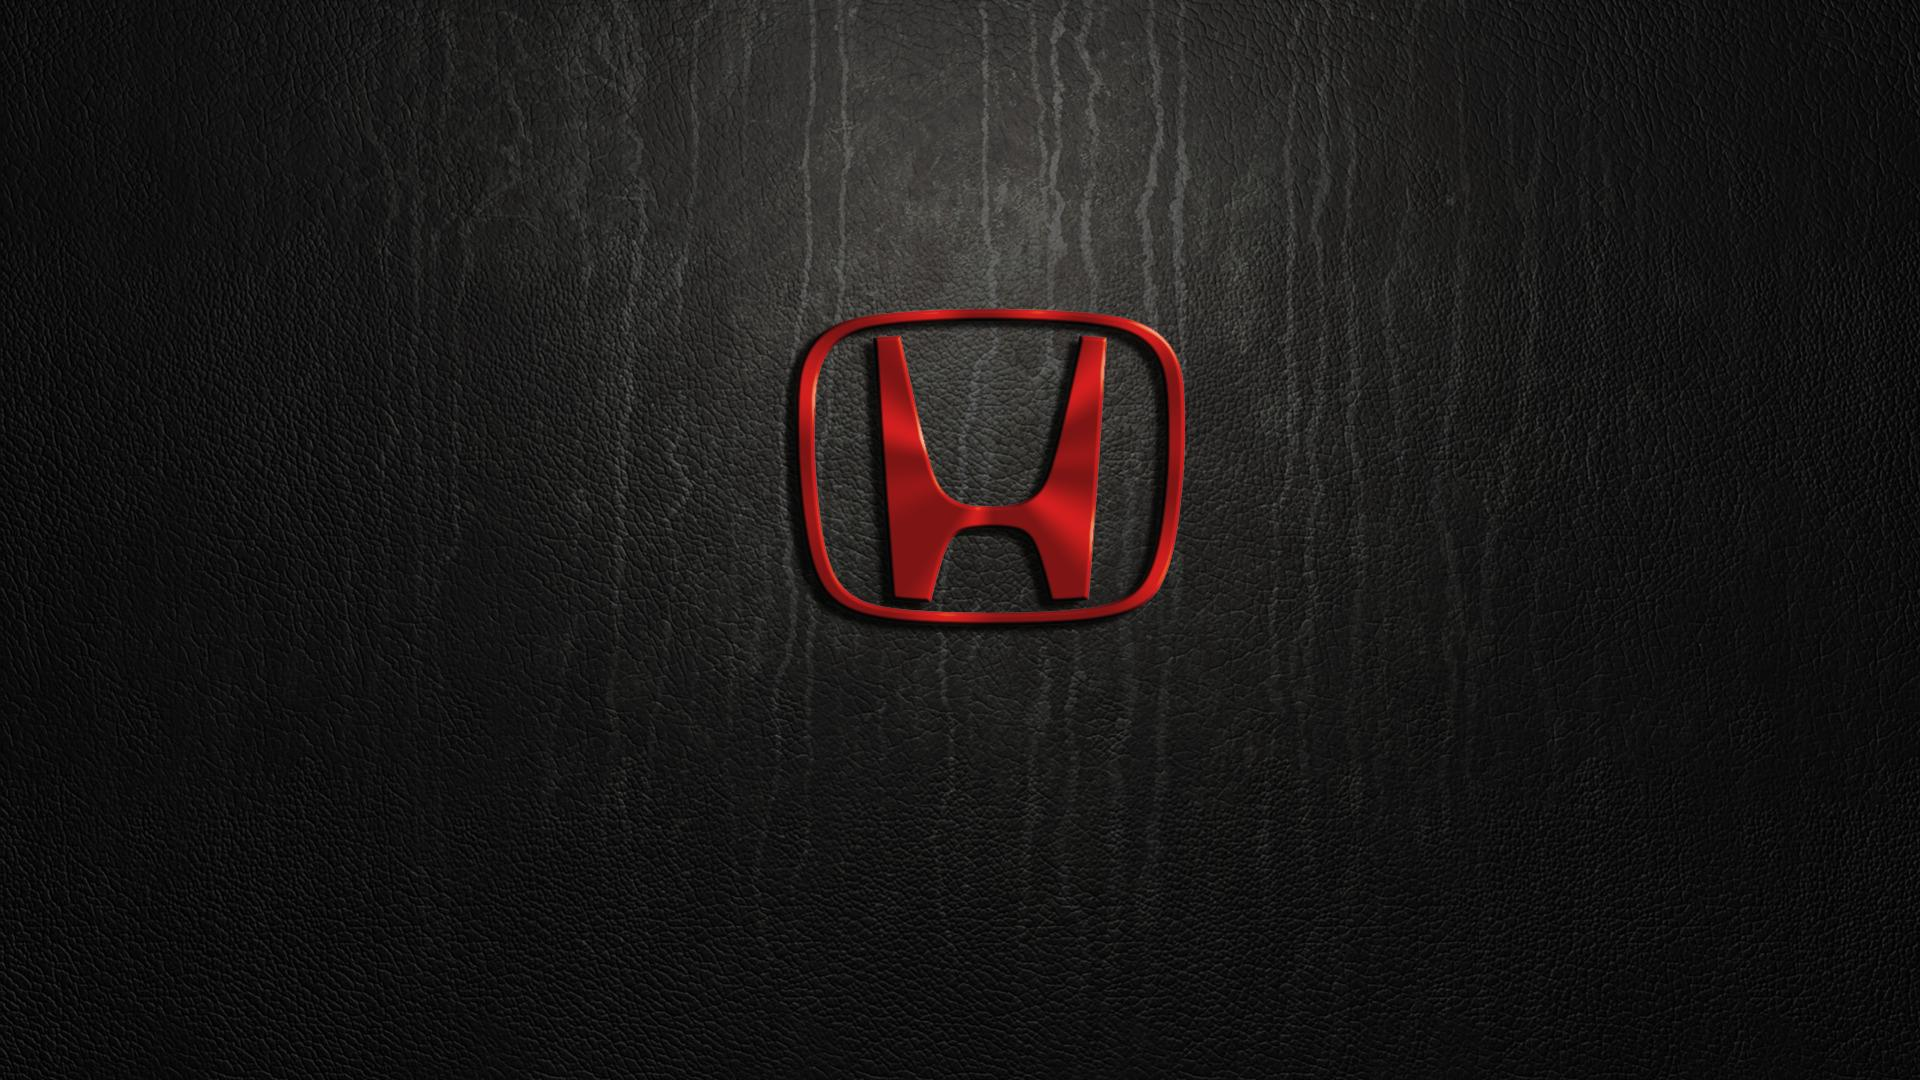 Honda Phone Wallpapers Honda Logo Wallpapers Wallpaper Cave